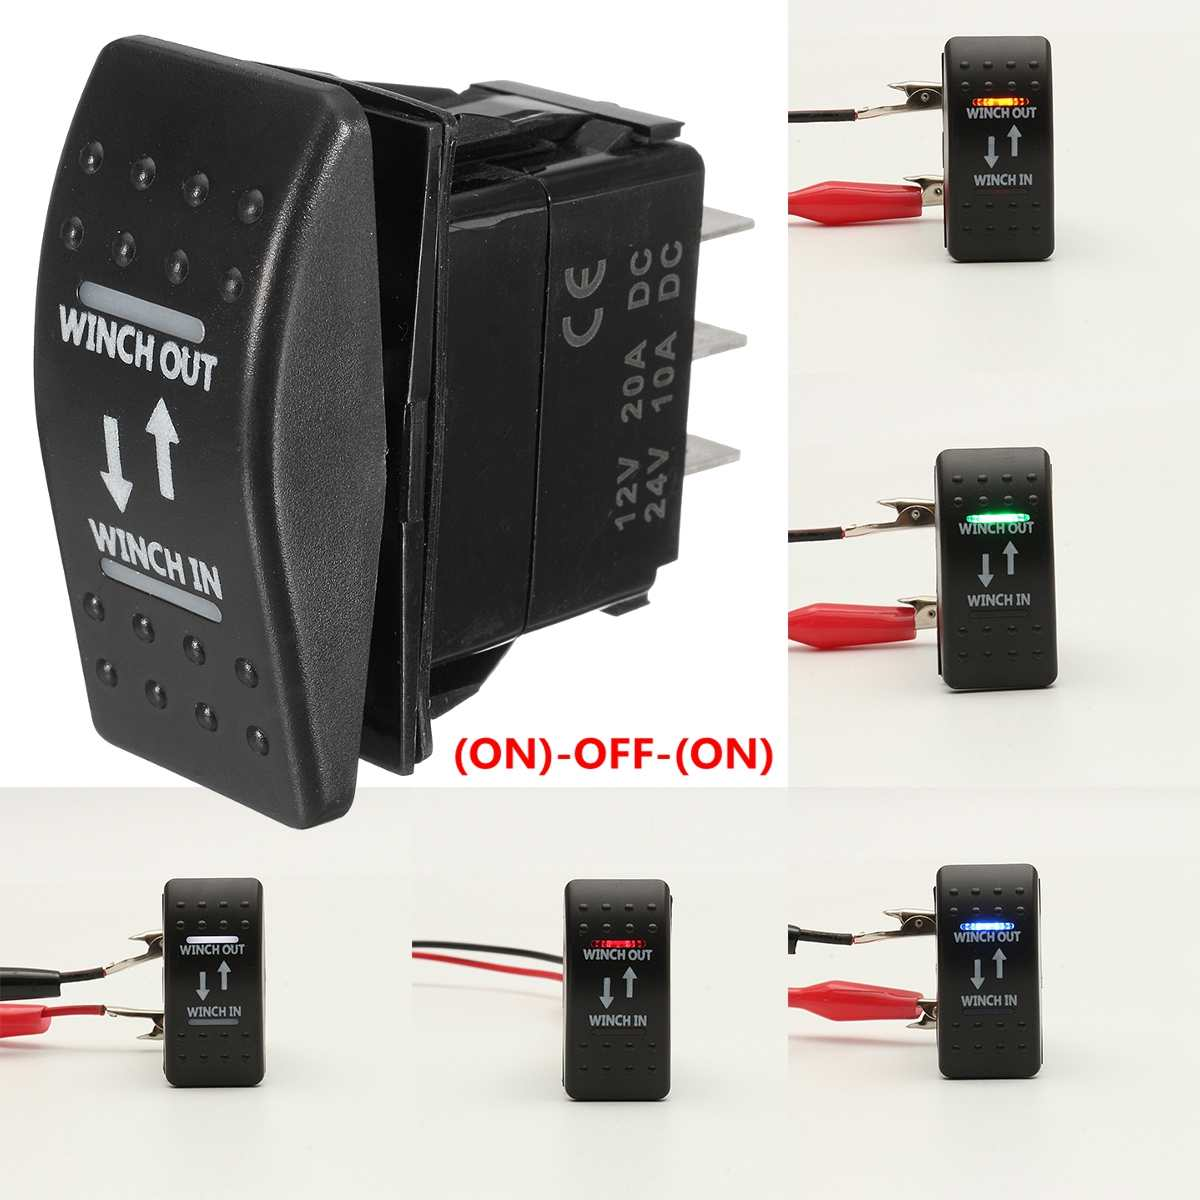 12v 20a Winch In Winch Out On Off On Rocker Switch Momentary Led 7 Pin Car Switches Relays Aliexpress